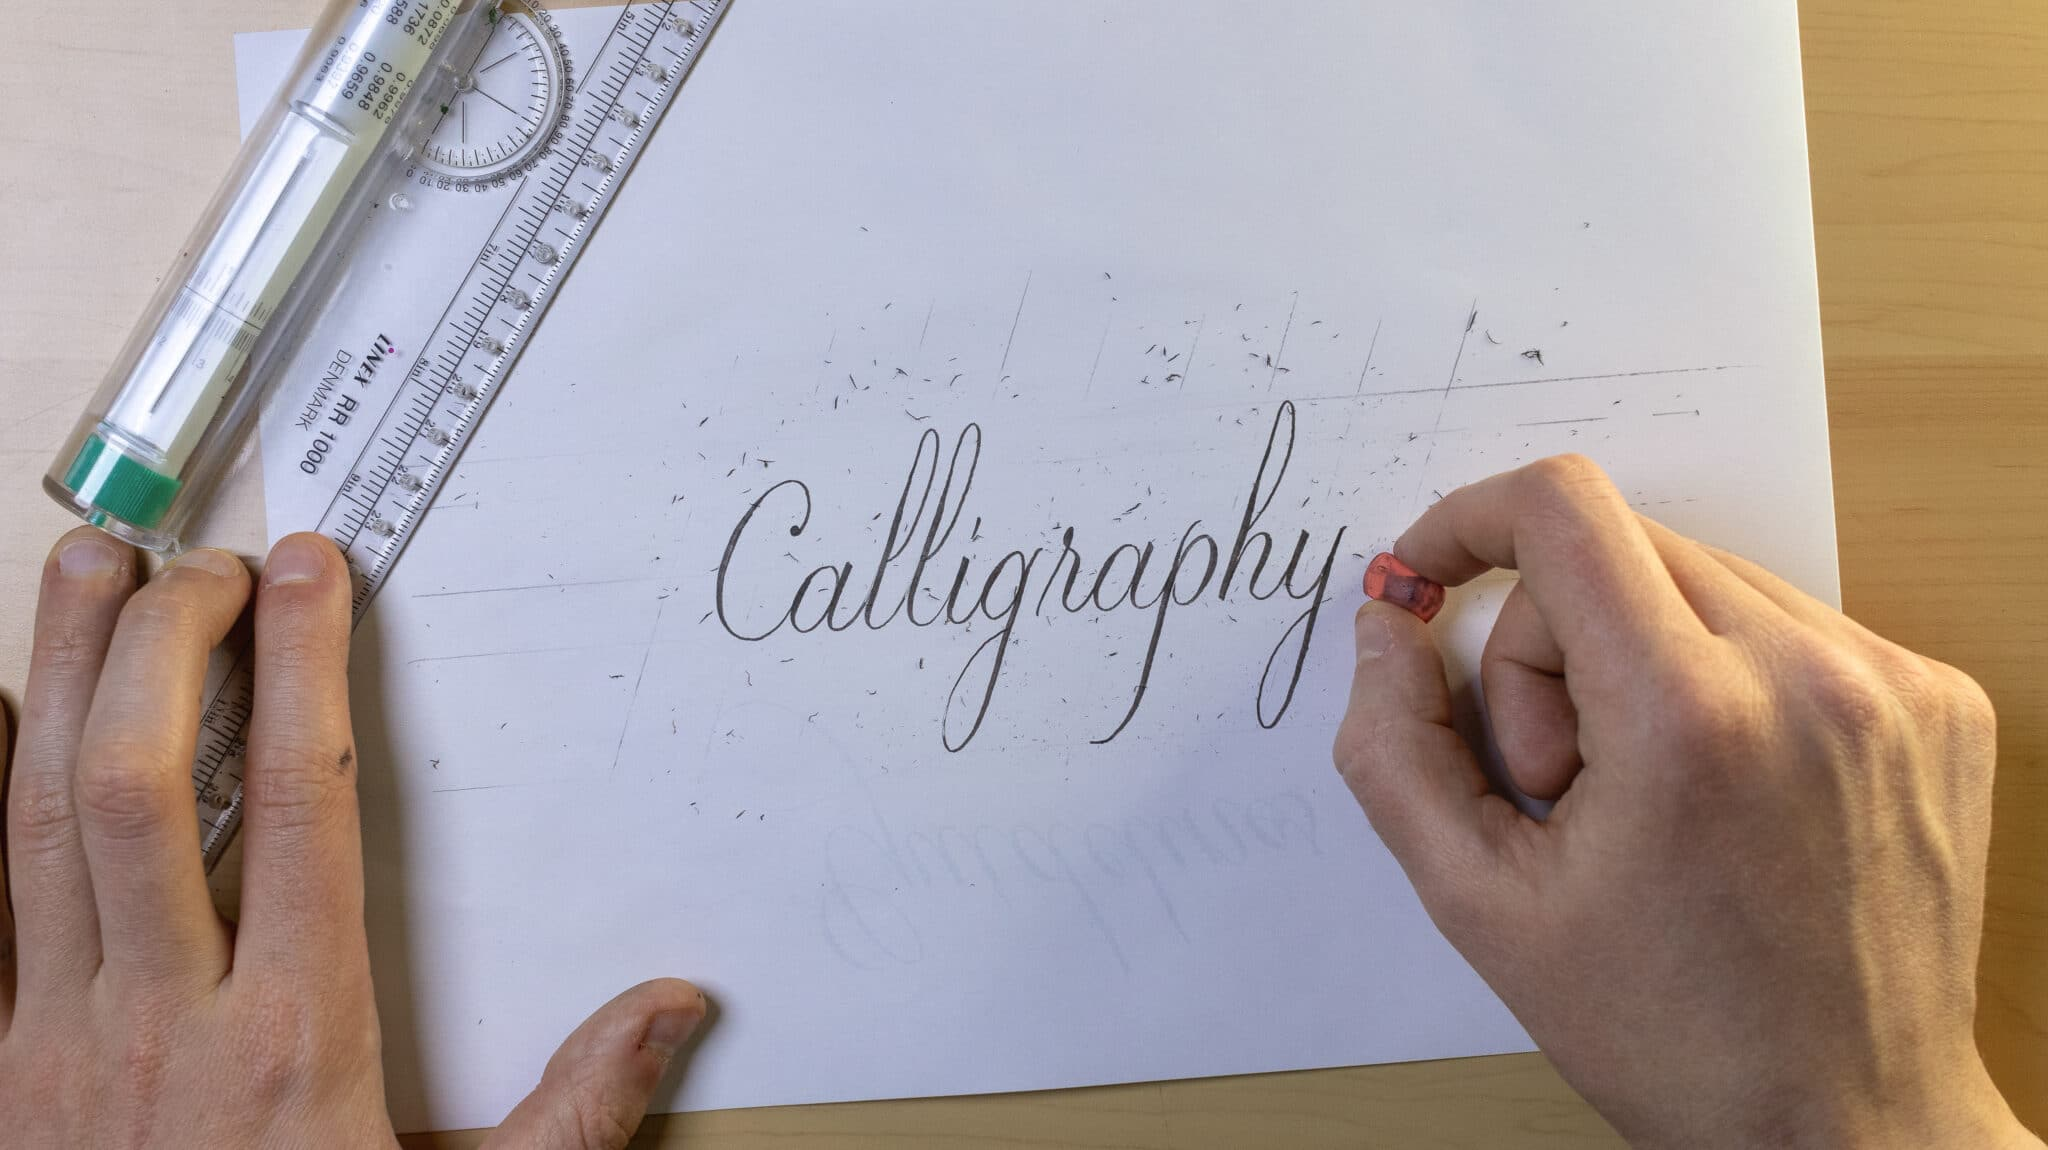 How To Make Calligraphy Guidelines Image 3 - Lettering Daily